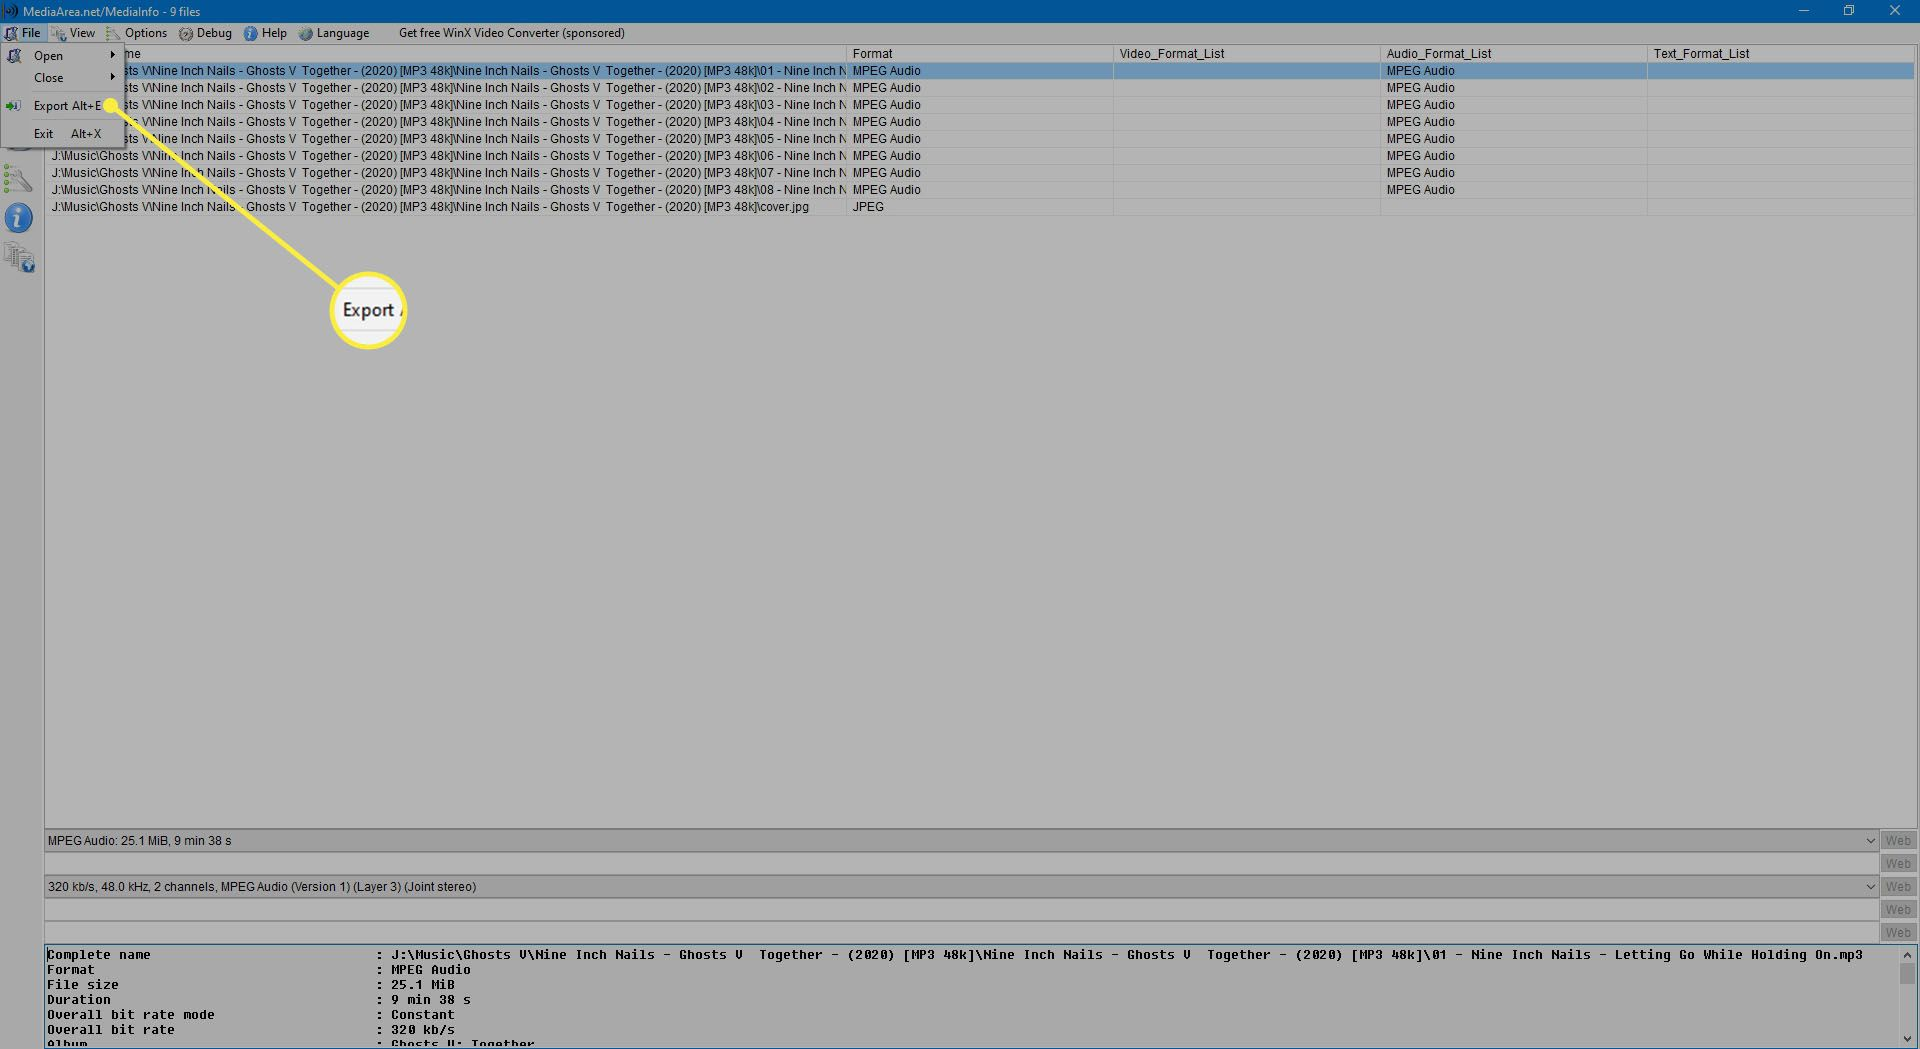 Selecting Export from the File menu.